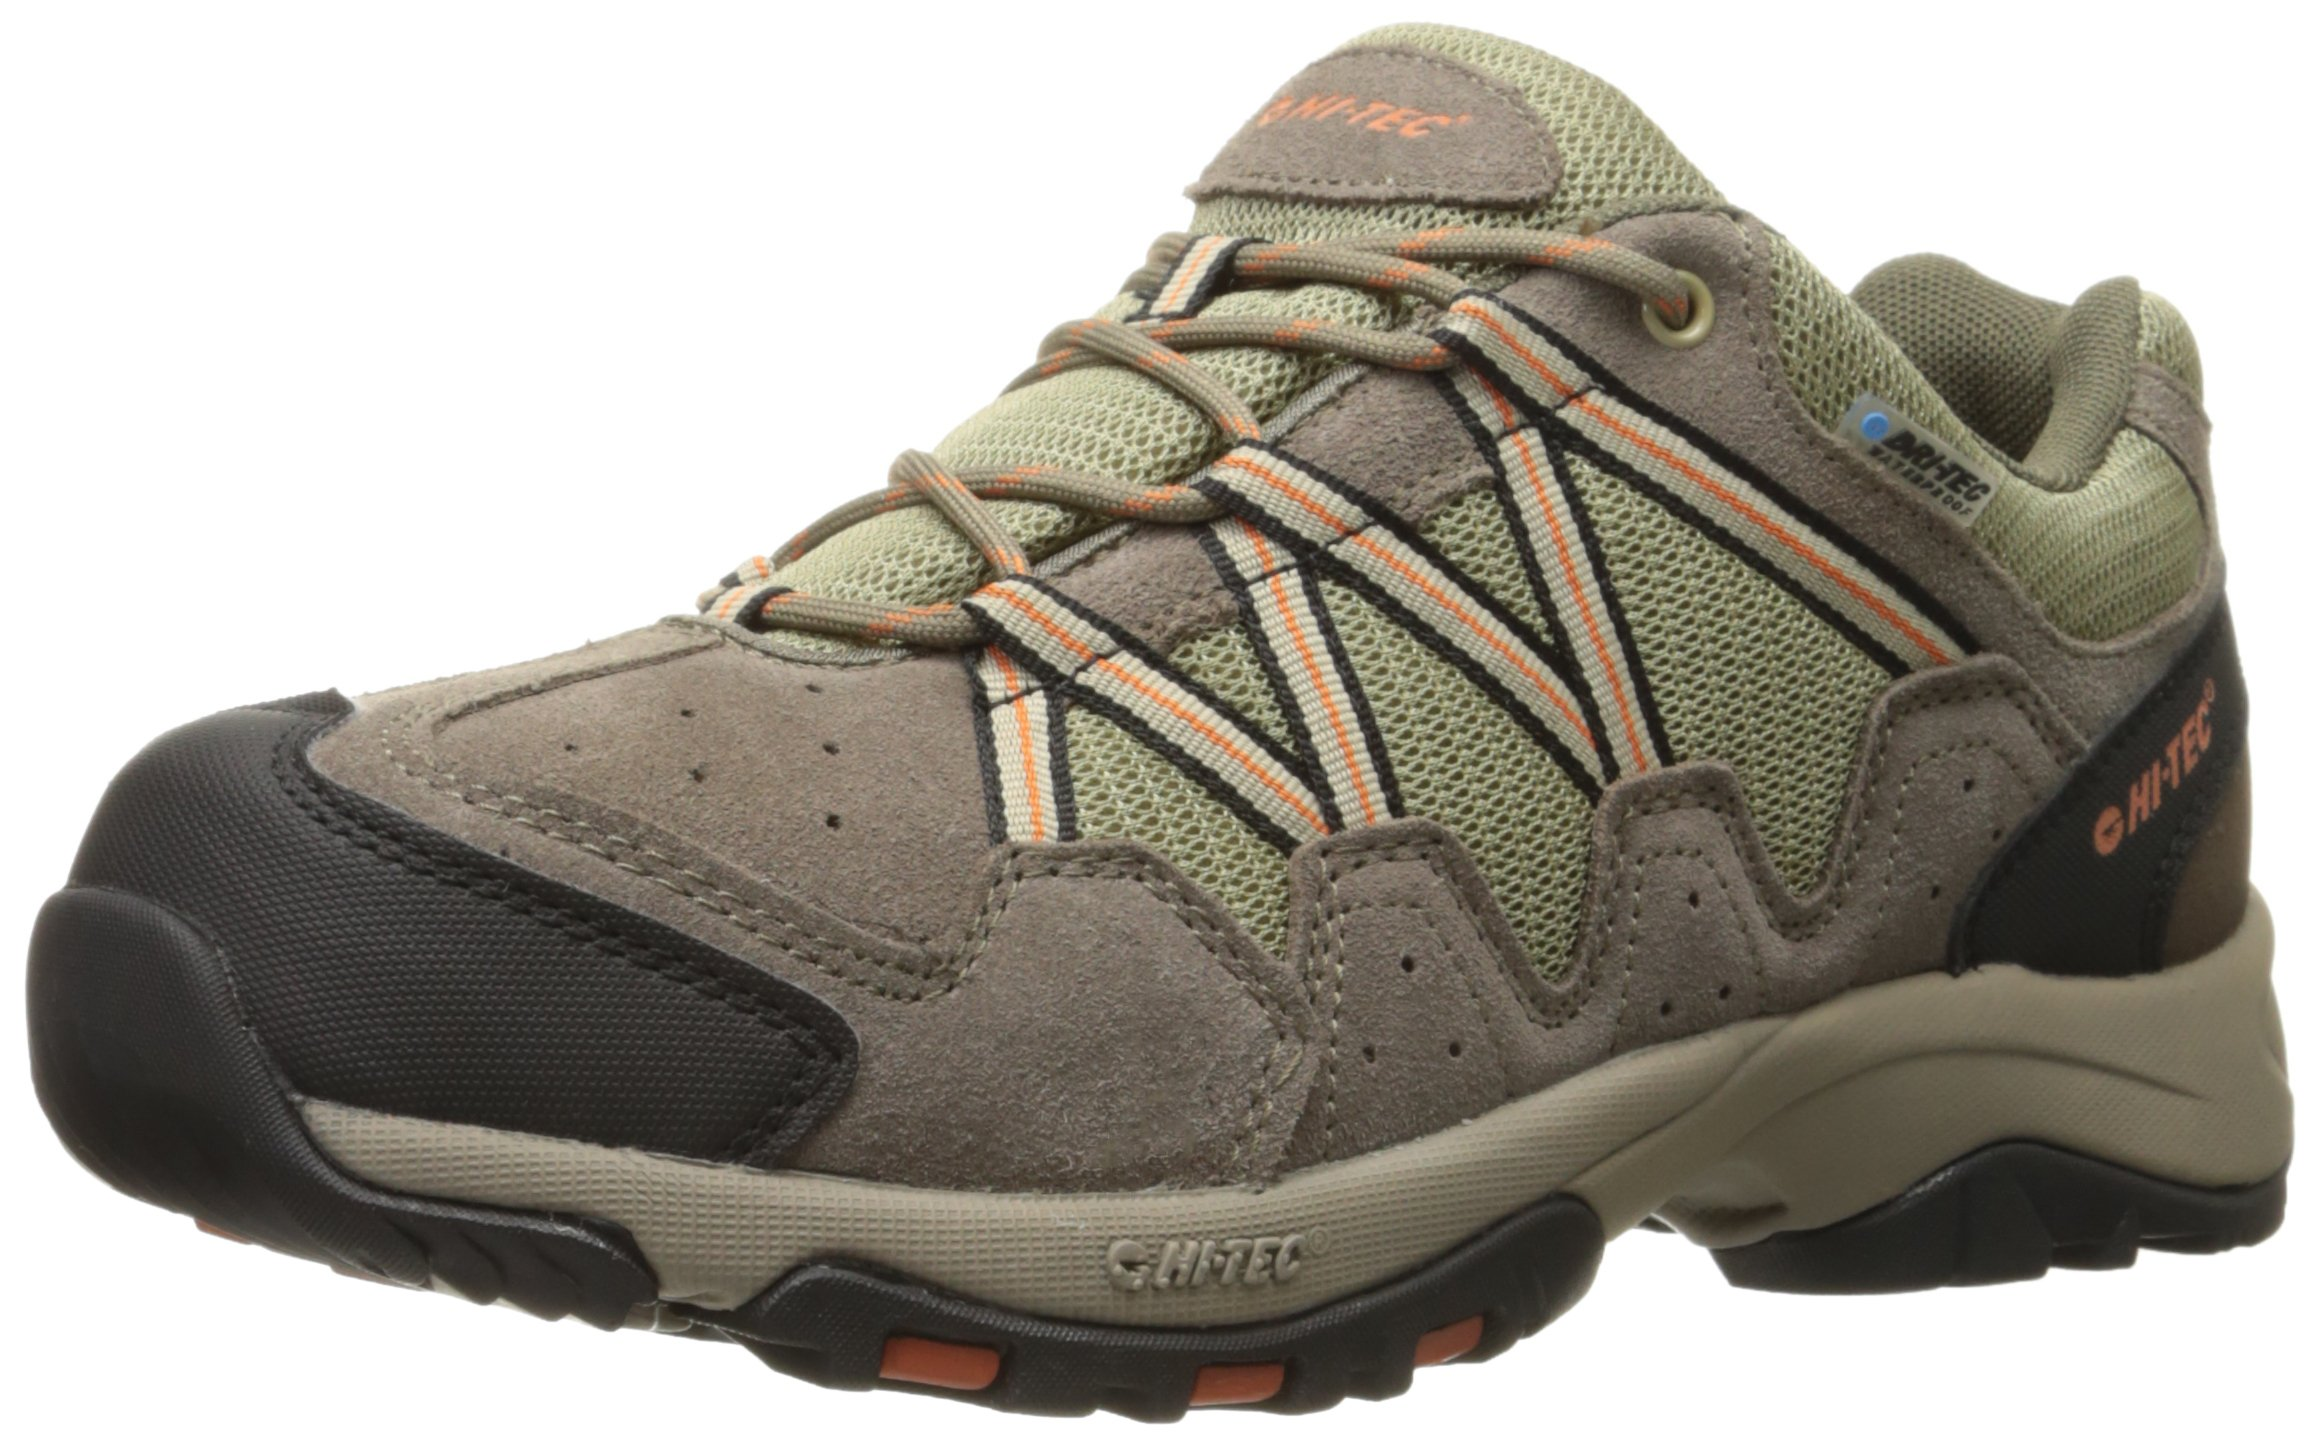 Hi-Tec Men's Dexter Low Waterproof Multisport Shoe, Smokey Brown/Burnt Orange, 10.5 M US